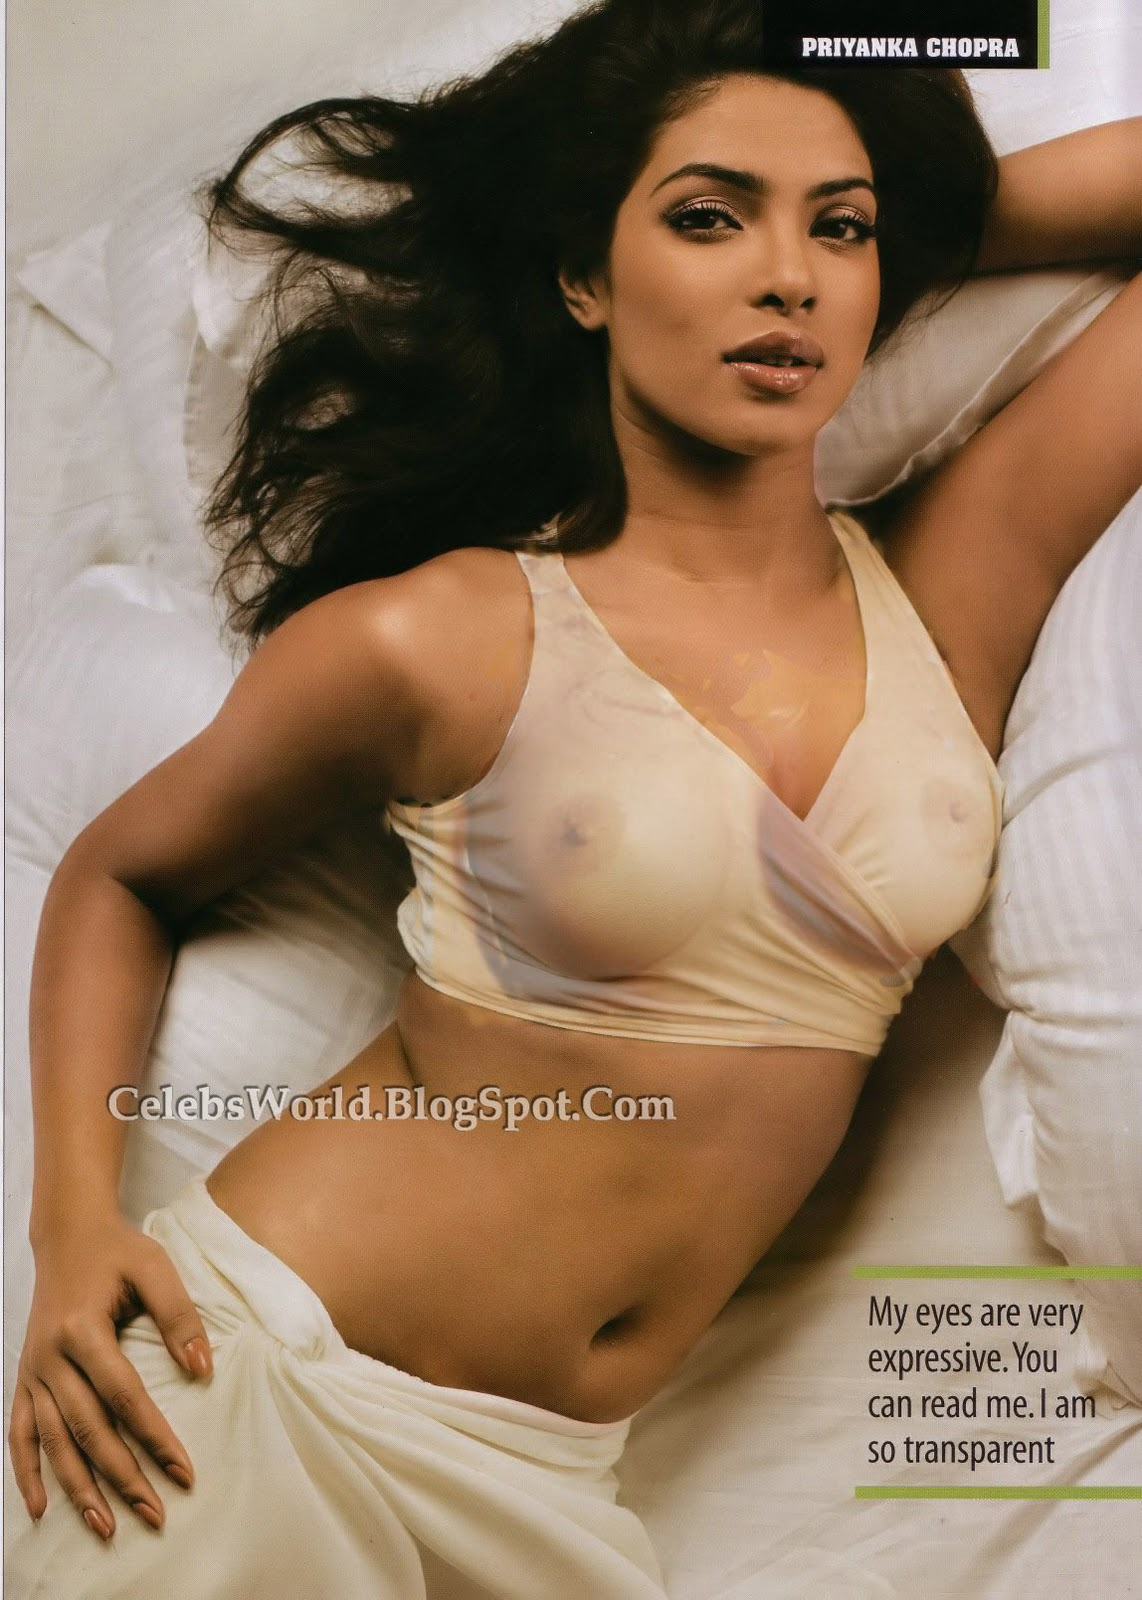 Priyanka chopra sex nude photos